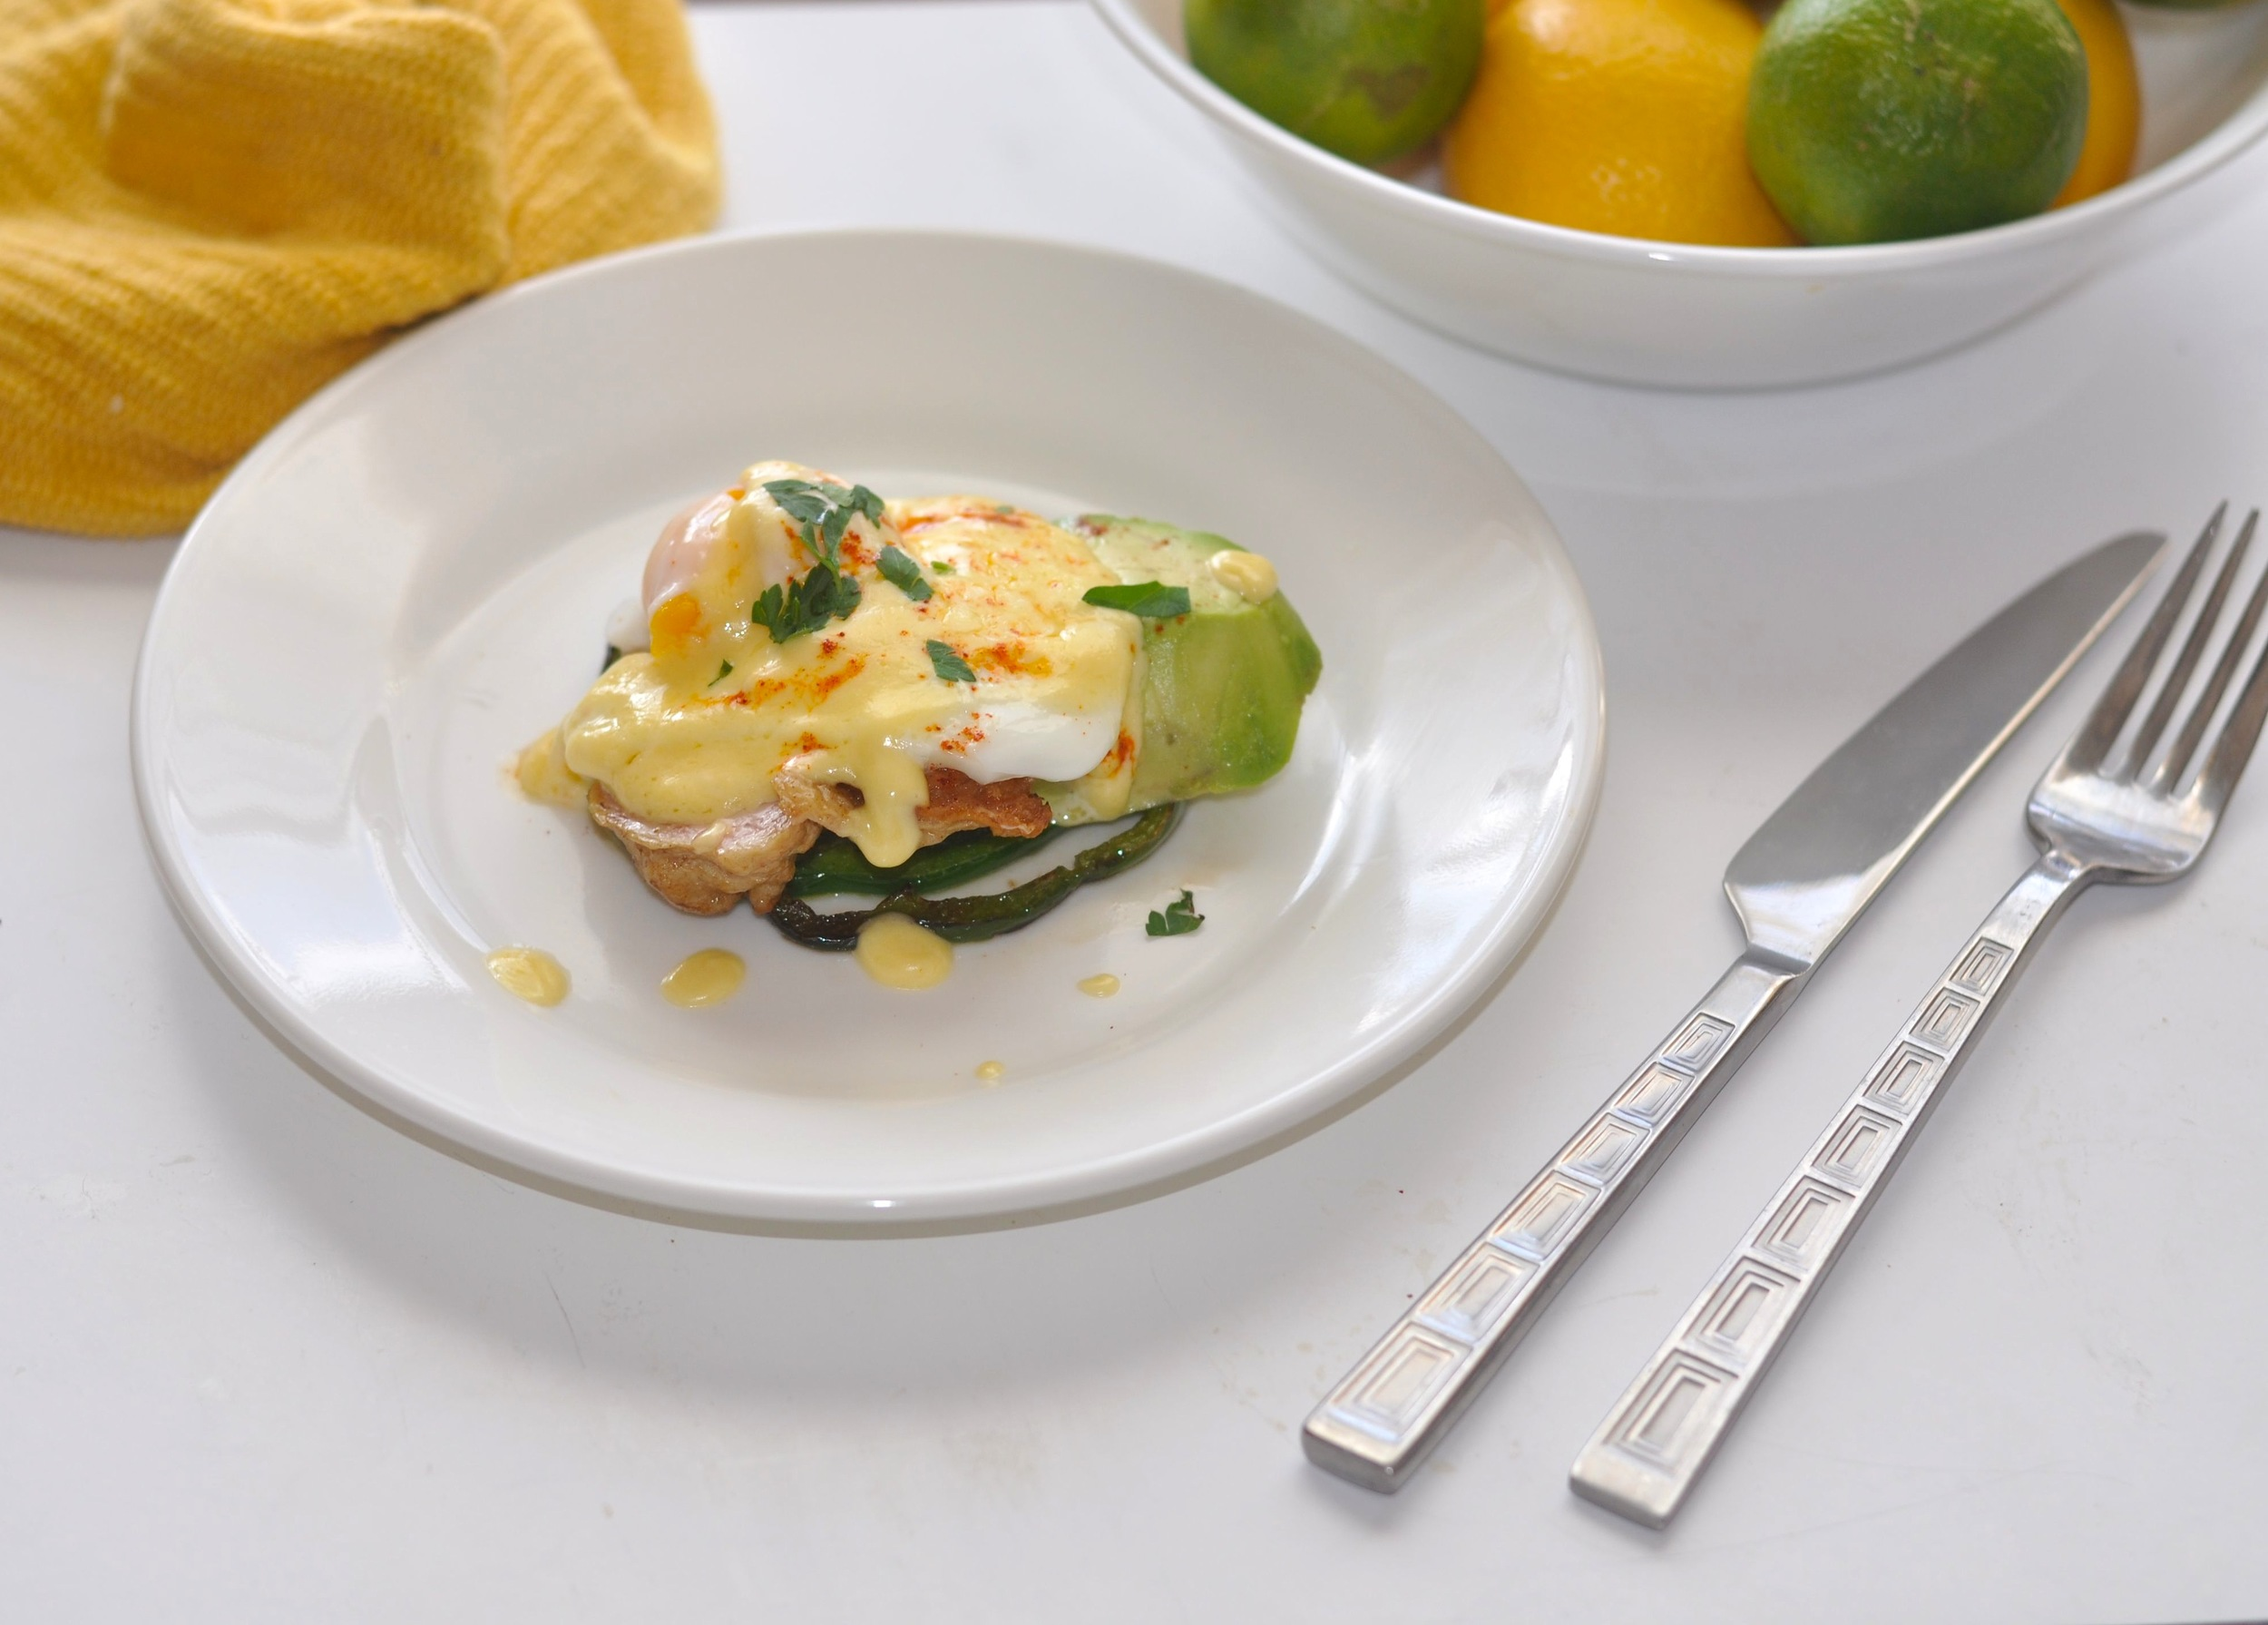 Low Carb Southwestern Eggs Benedict